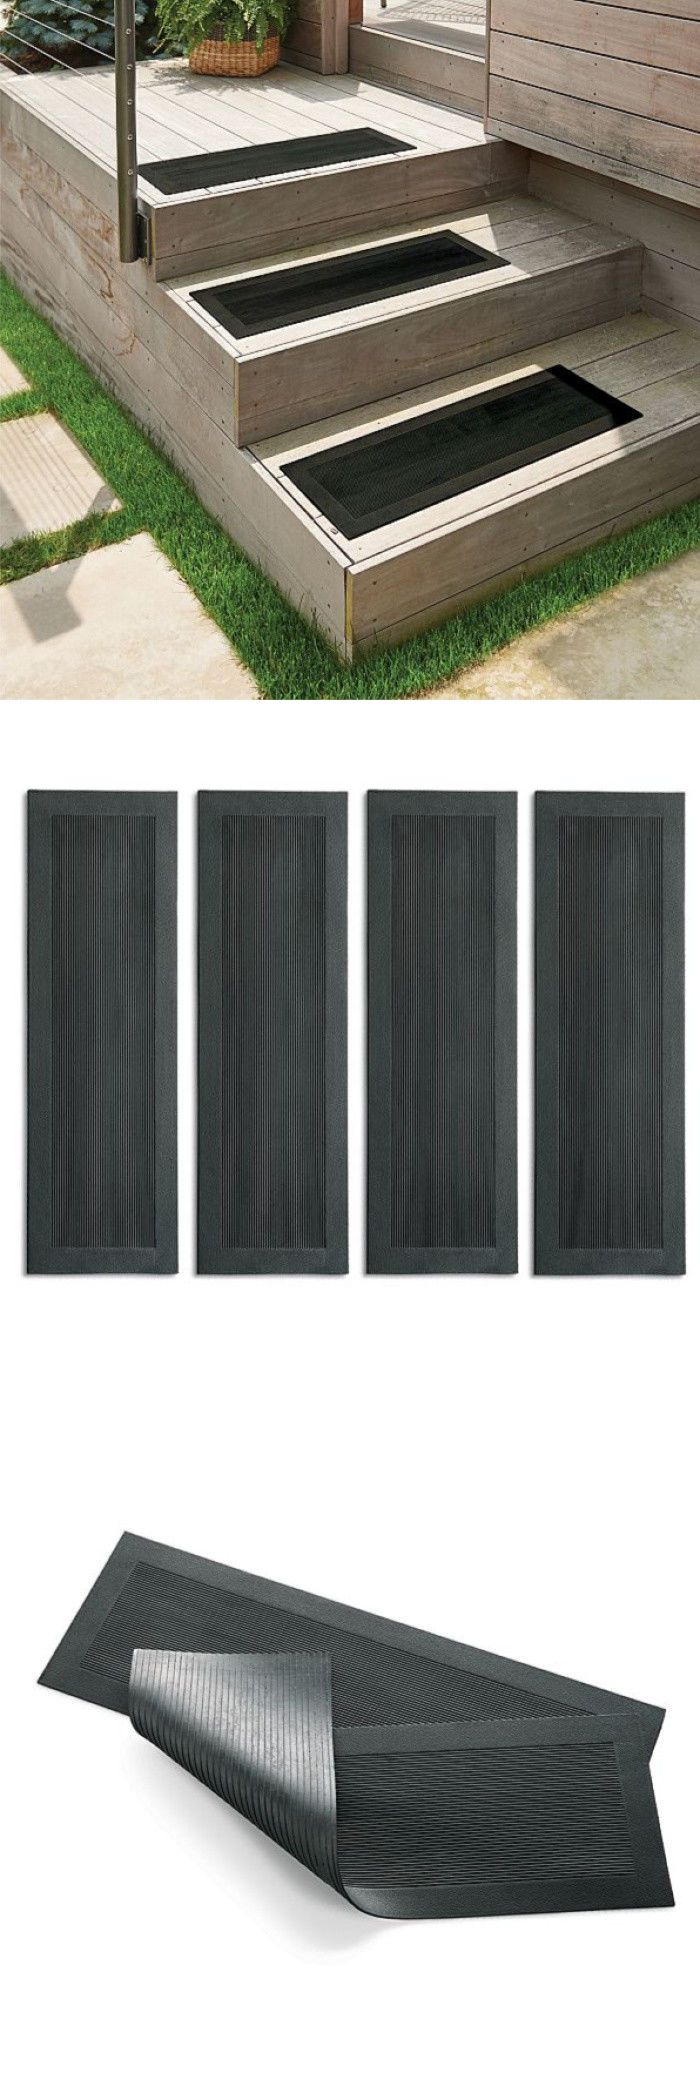 Best Stair Treads 175517 Rubber Stair Treads Set Of 4 Textured 640 x 480